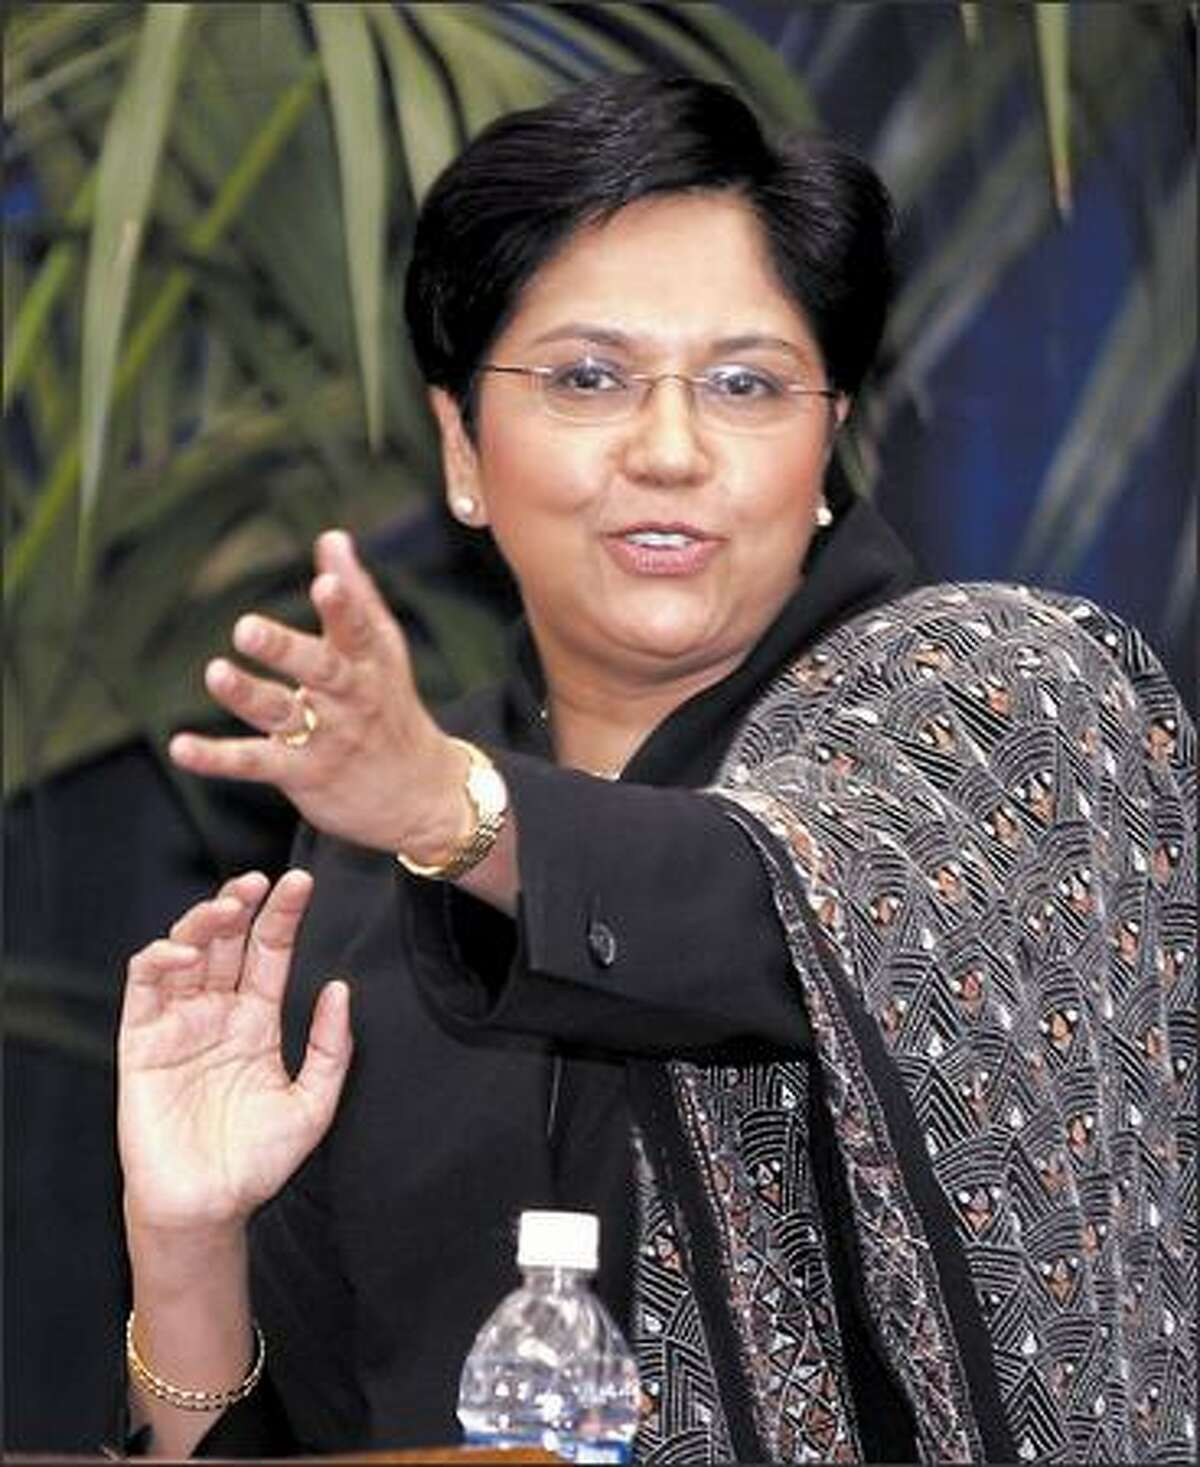 Chief Financial Officer Indra Nooyi has become chief executive of PepsiCo Inc., making her the No. 2 female CEO in the Fortune 500.